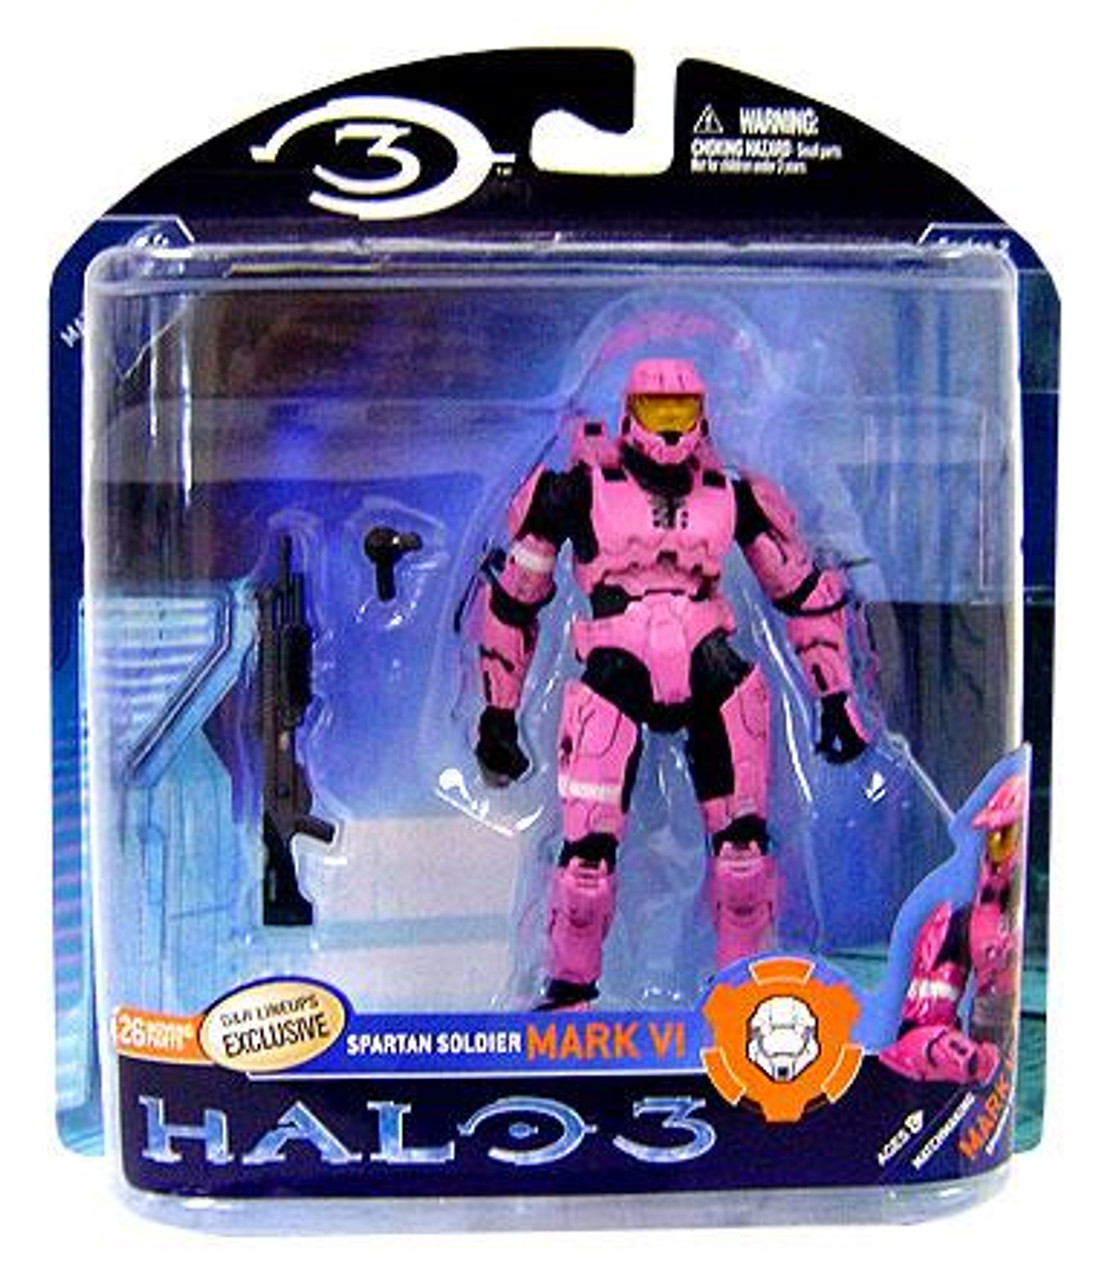 McFarlane Toys Halo 3 Series 2 Spartan Soldier Mark VI Exclusive Action Figure [Pink]